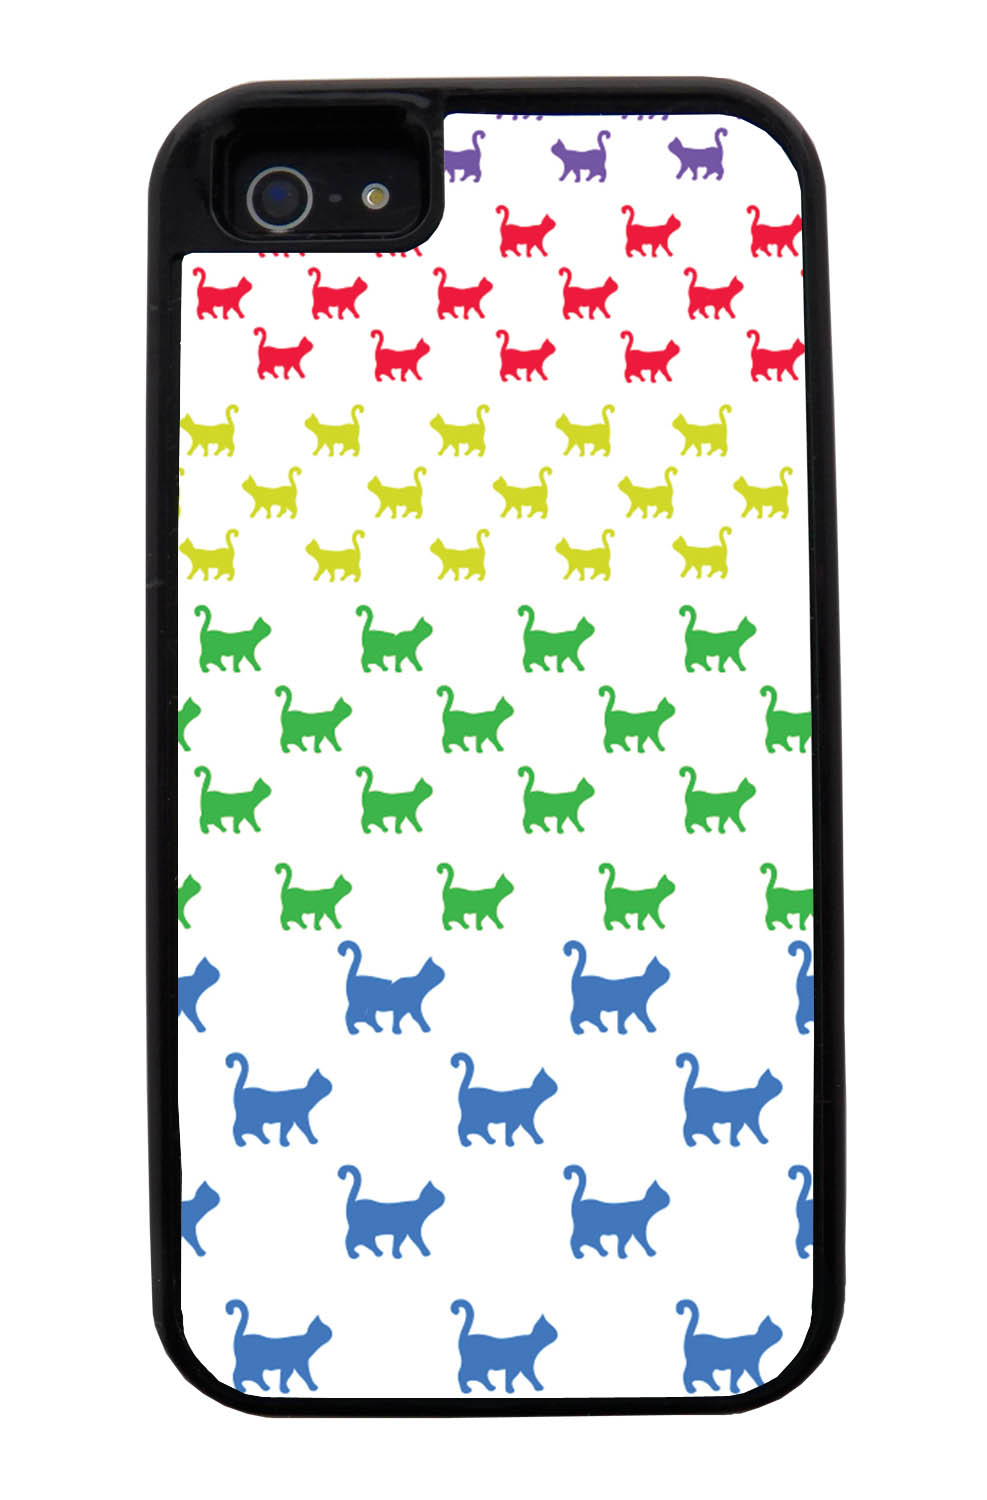 Apple iPhone 5 / 5S Cat Case - Rainbow Colored Walking Cat on White - Simple Stencils Cutout - Black Tough Hybrid Case